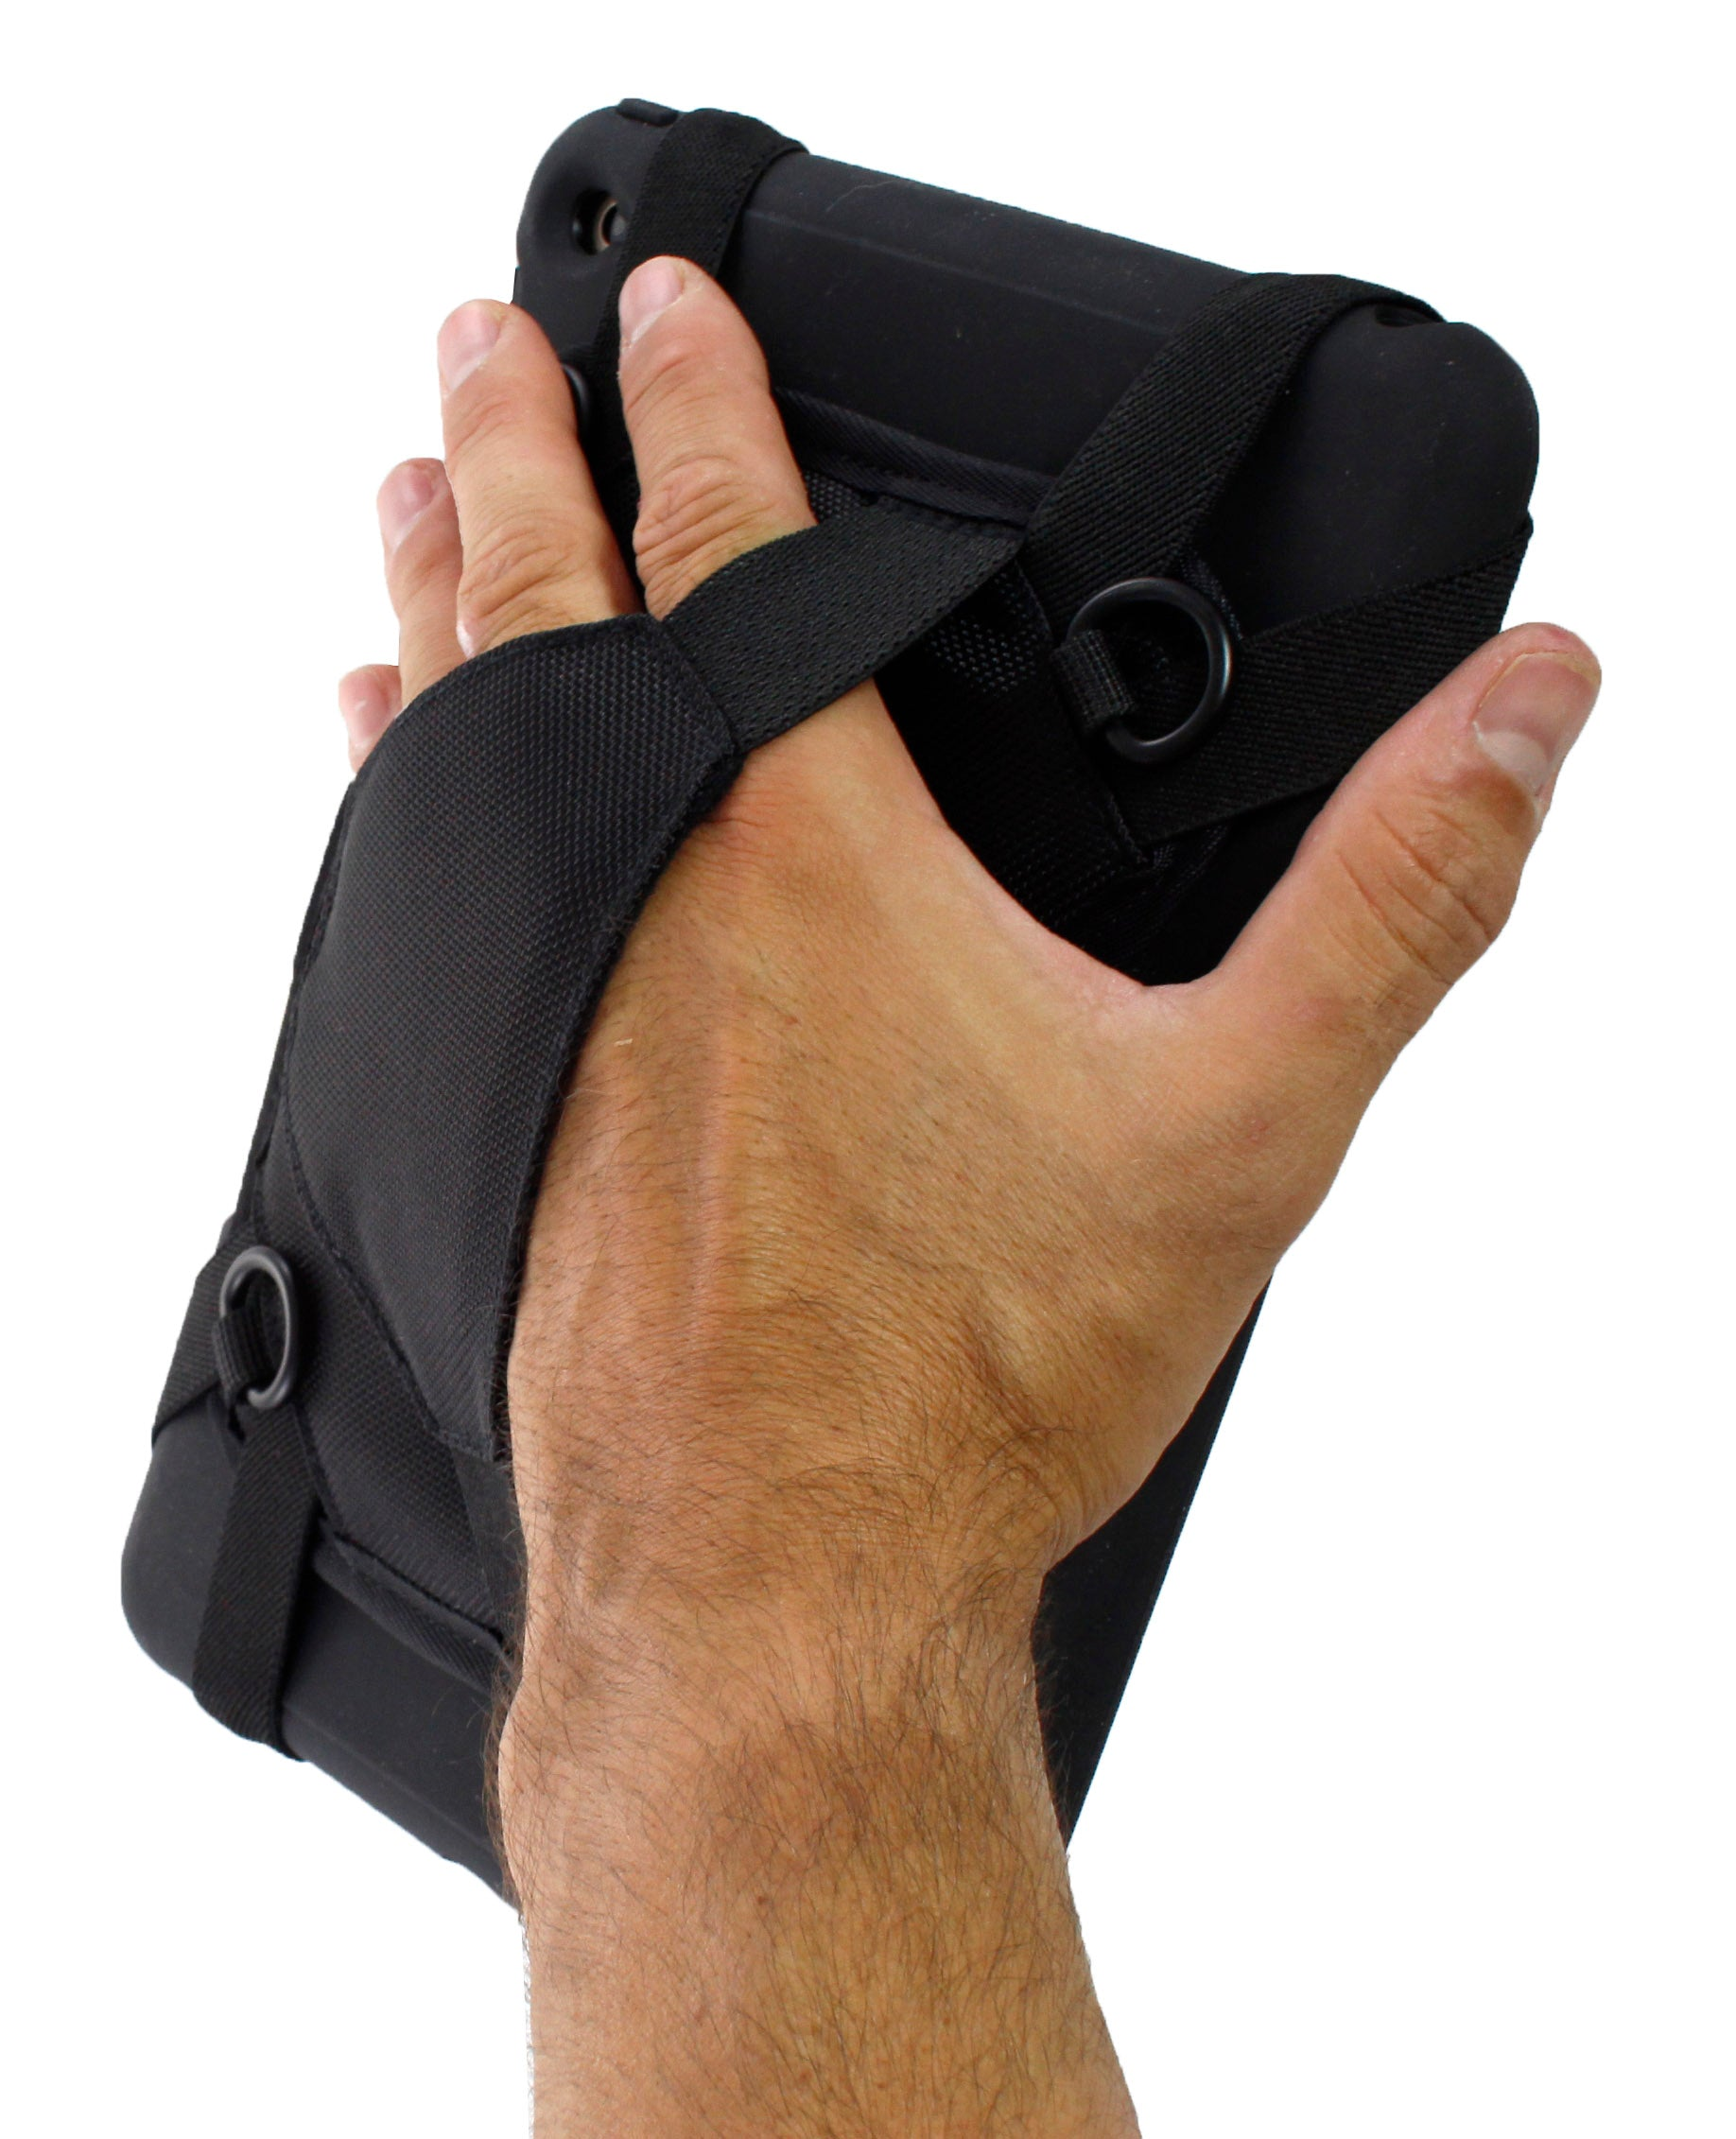 A hand strap helps to reduce fatigue